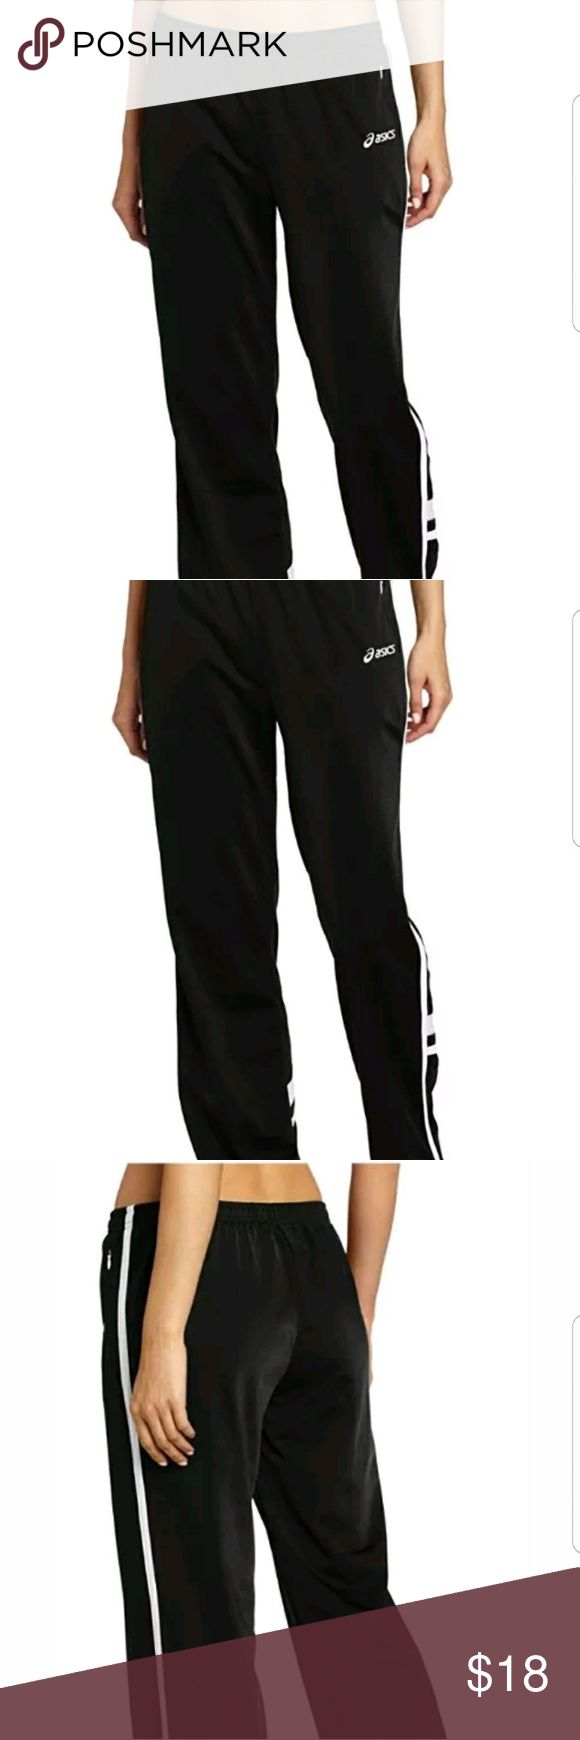 "Asics Women's Cabrillo Pants Gym Training Black Asics Women's Cabrillo Pants Gym Training Black Track   Size M   Gently used, no flaws.   Does have the initials A.S on left side of pocket.   Inseam - 31.5 ""   All items that are preowned are laundered before shipping. Please feel free to ask questions before purchasing. Measurements are approximate.   Thanks for looking! Asics Pants"